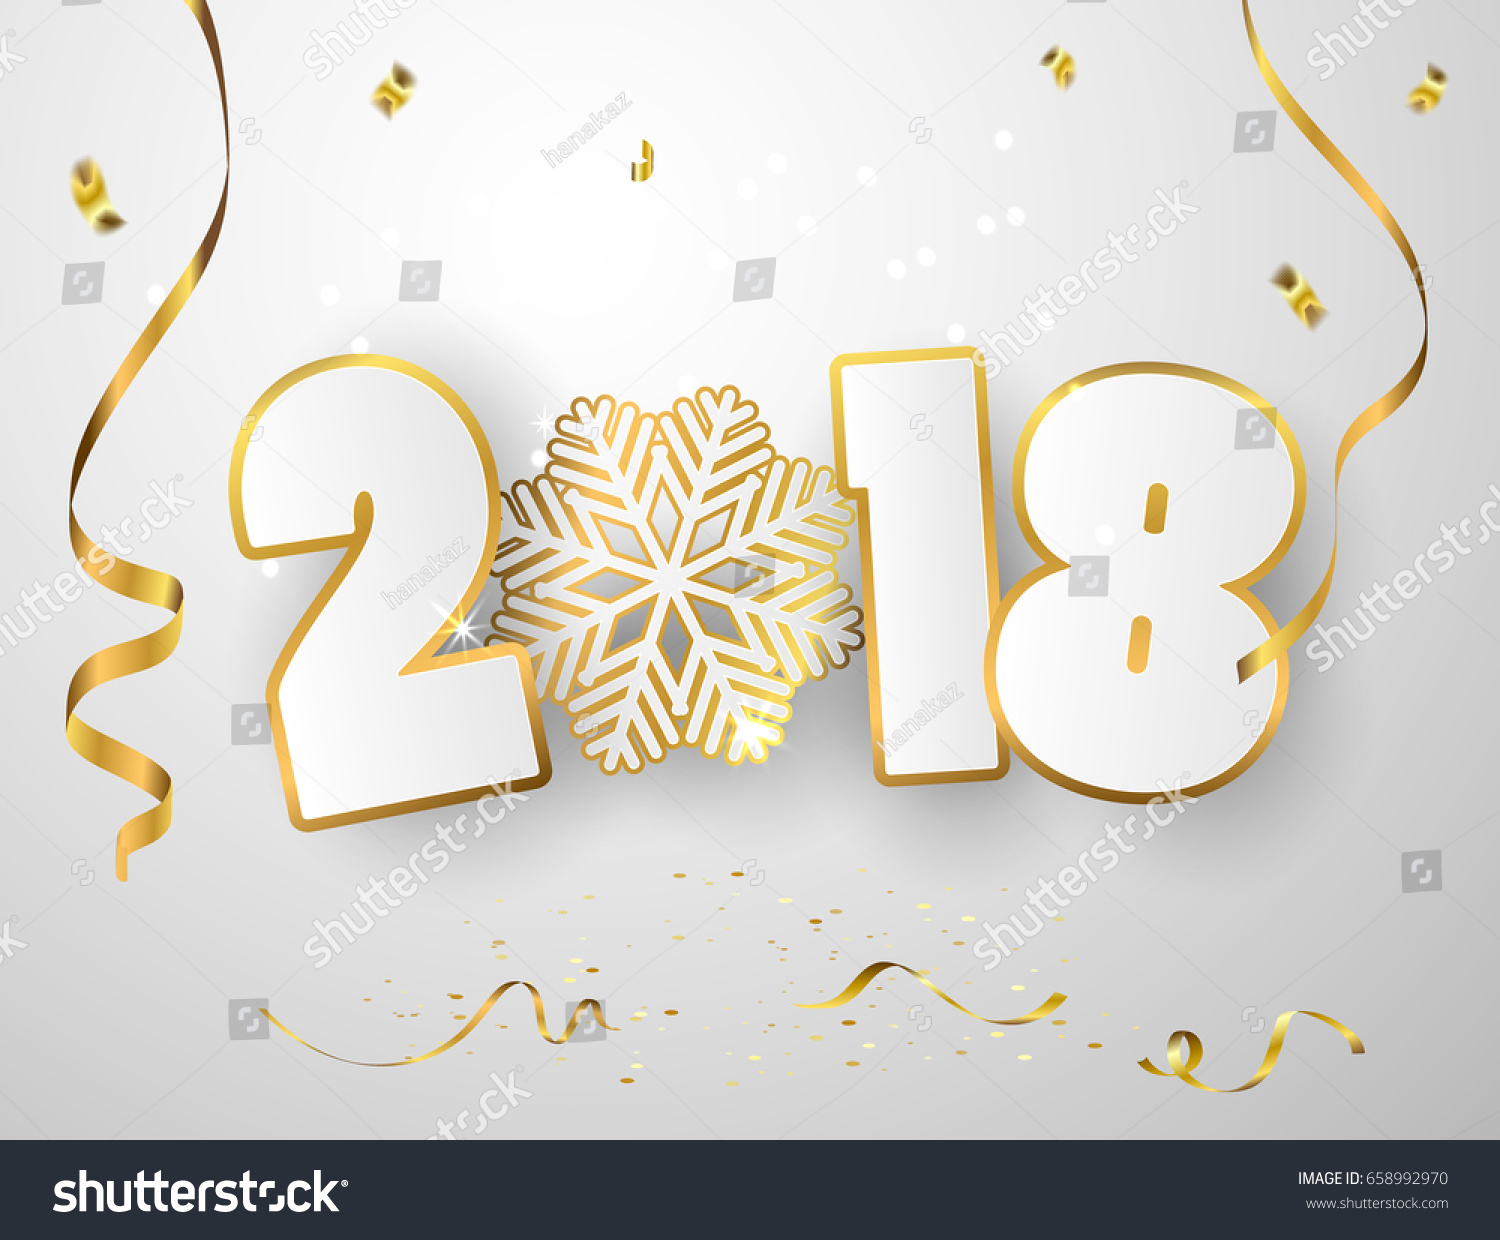 vector happy new year 2018 background with gold paper cuttings